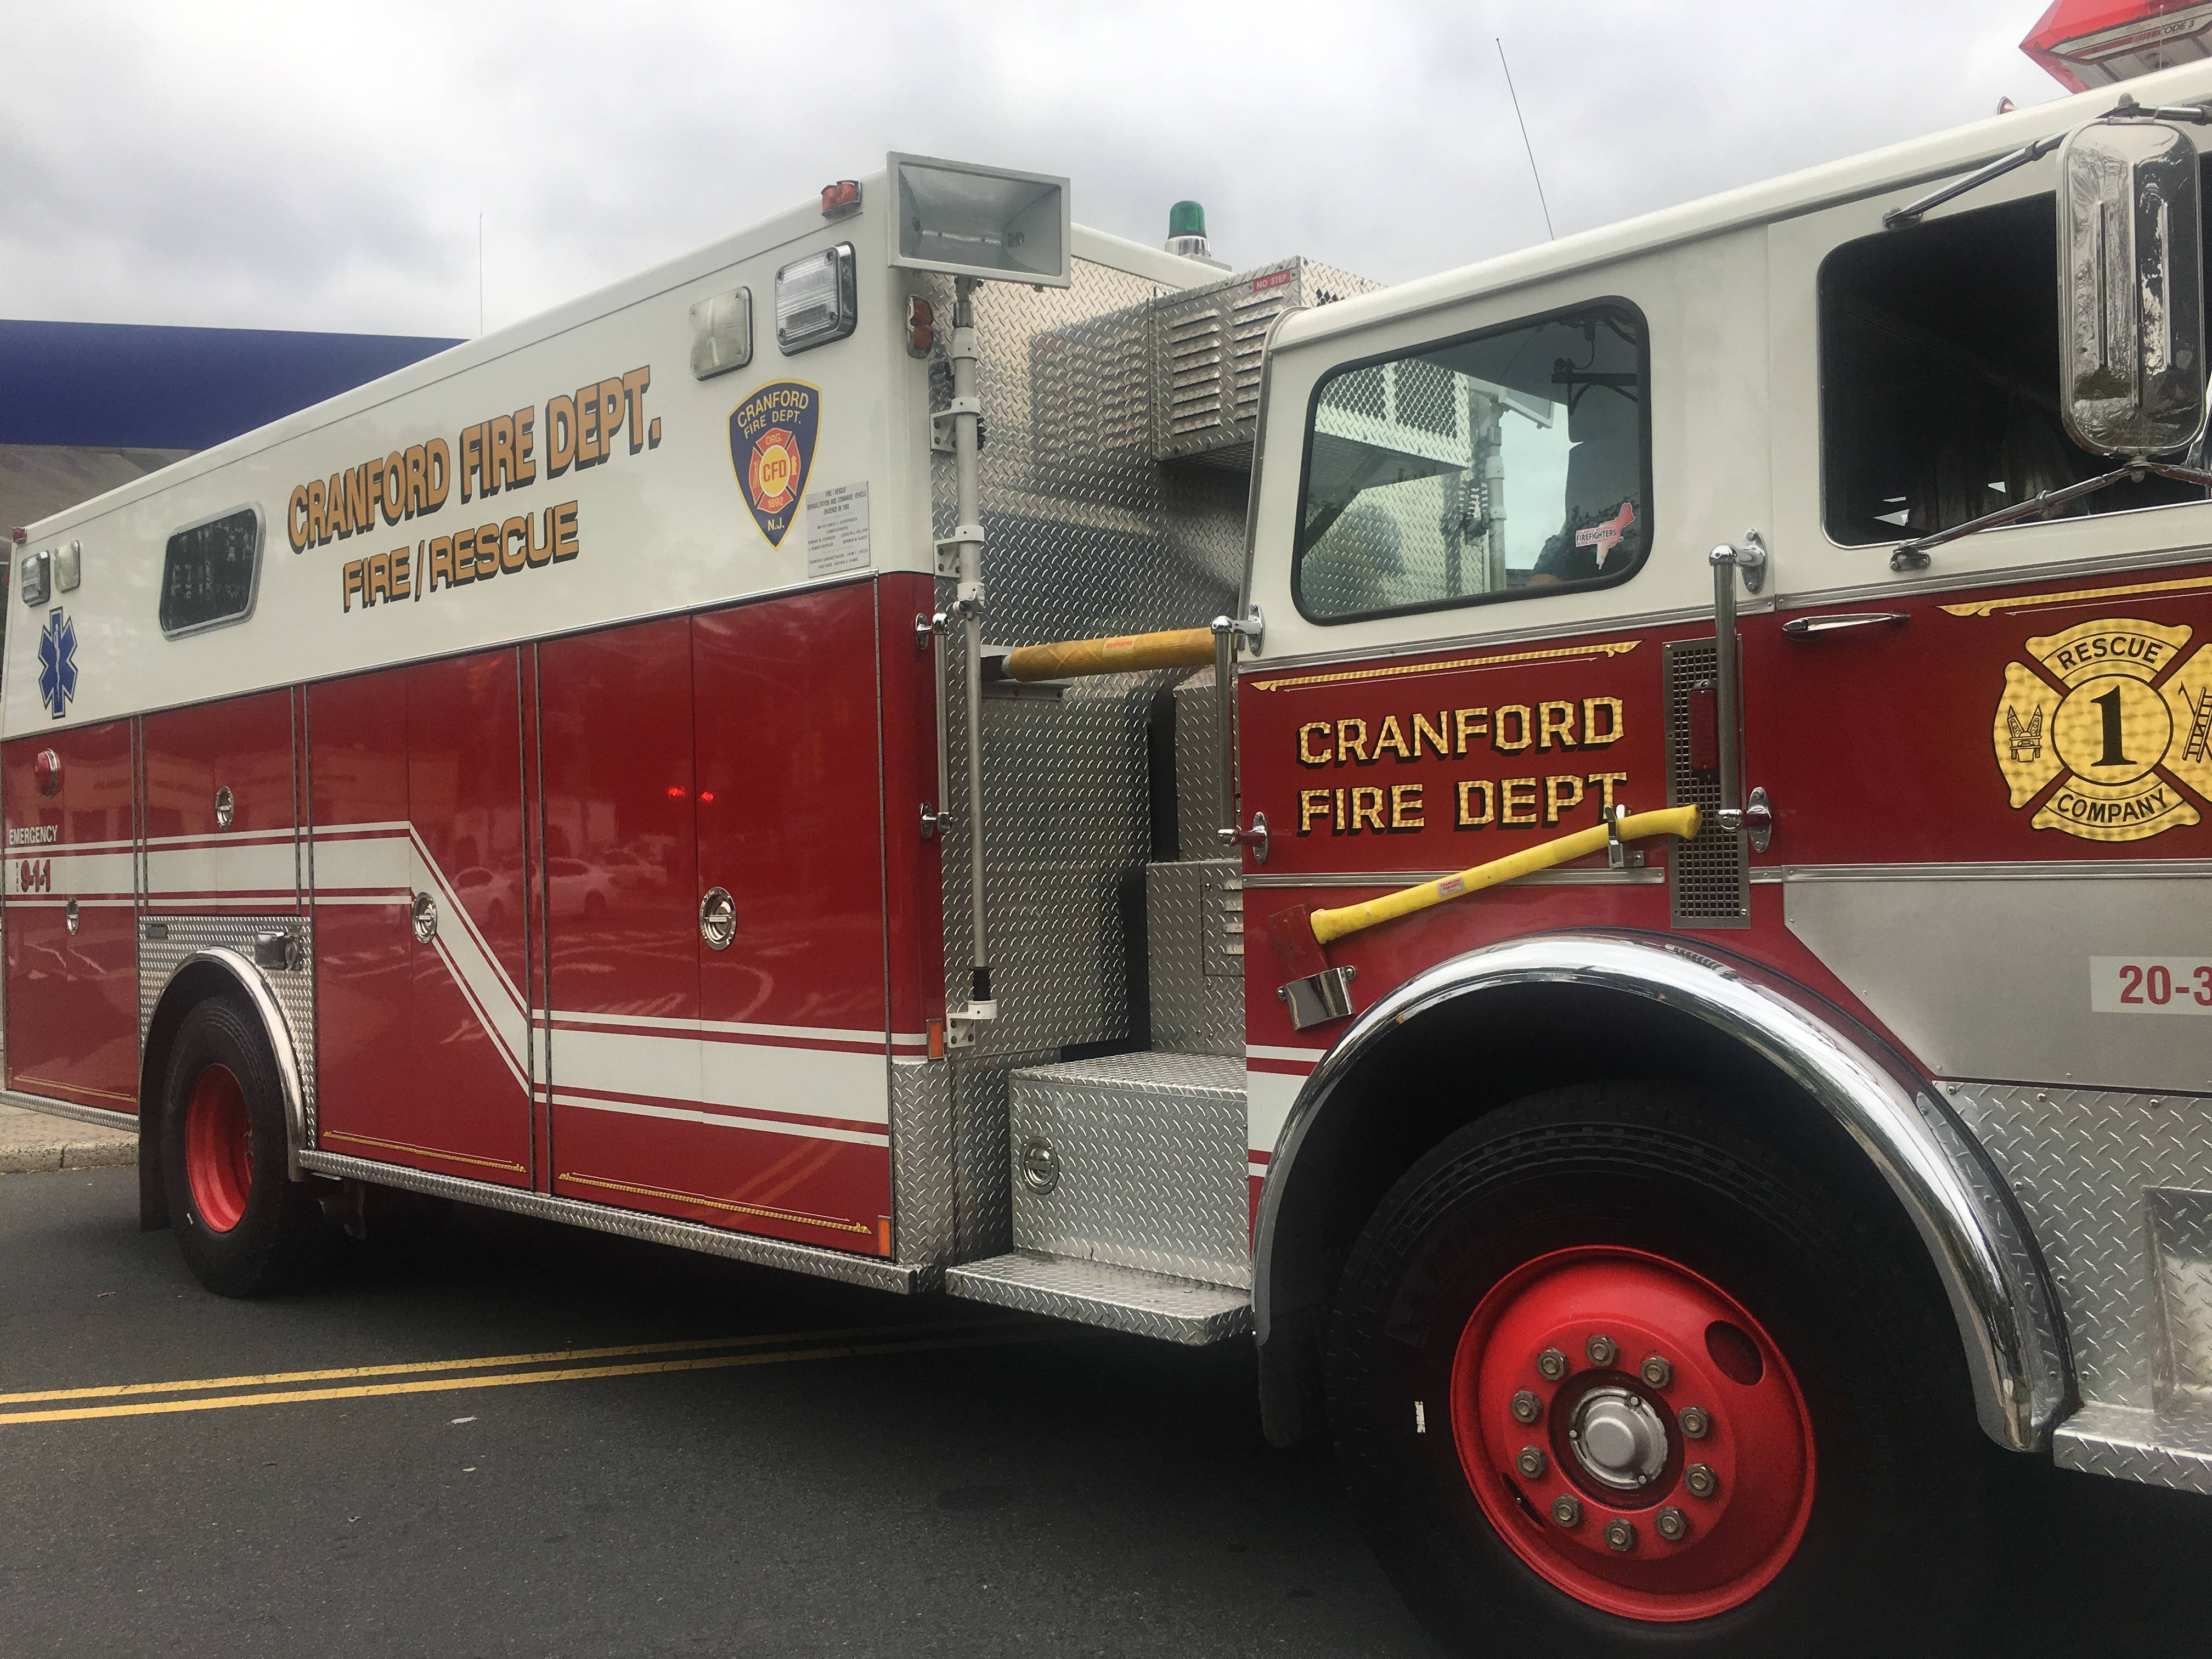 njsp helicopter with Three Injured In Electrical Fire In Cranford On T on Nj State Police C oree 2011 likewise 21694 furthermore Three Injured In Electrical Fire In Cranford On T also Watch also Article 610a7317 8479 5e5c Af22 6caf186ec359.